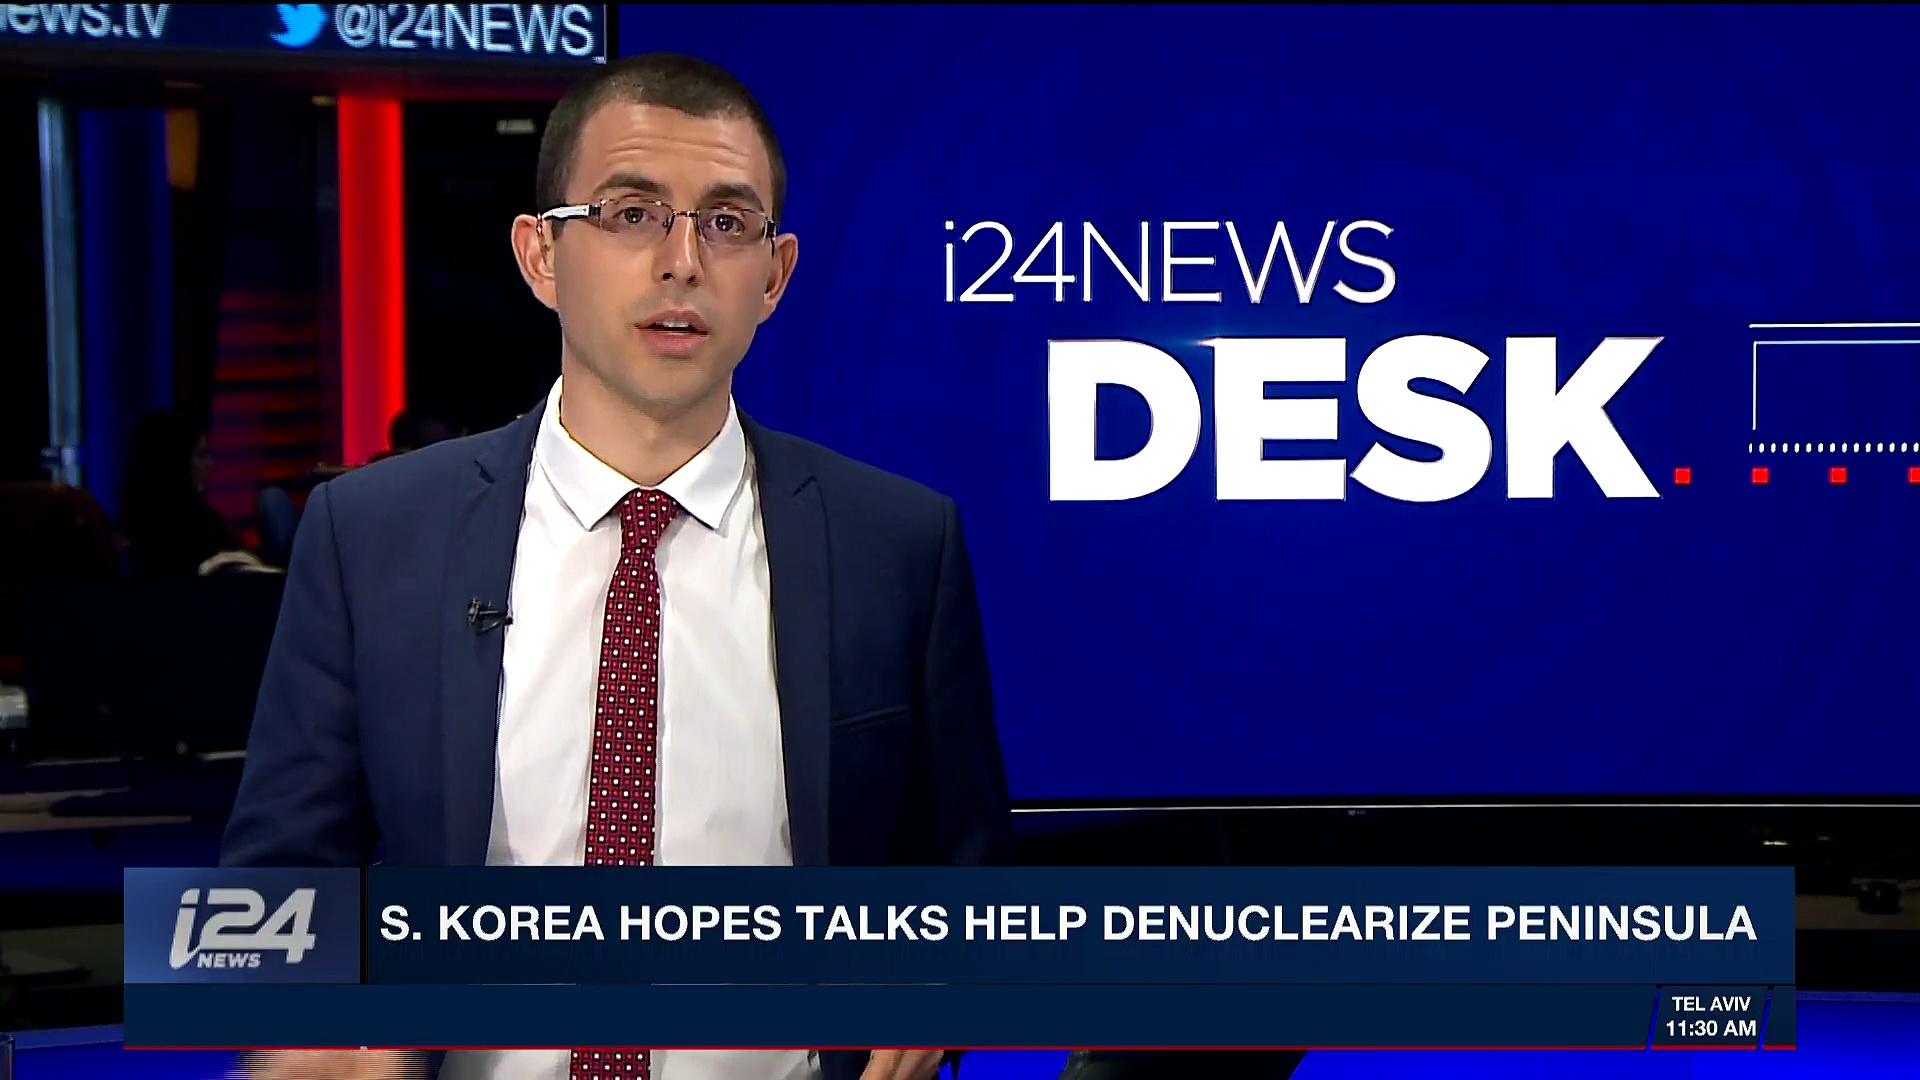 i24NEWS DESK | S. Korea hopes talks help denuclearize peninsula | Friday, March 9th 2018